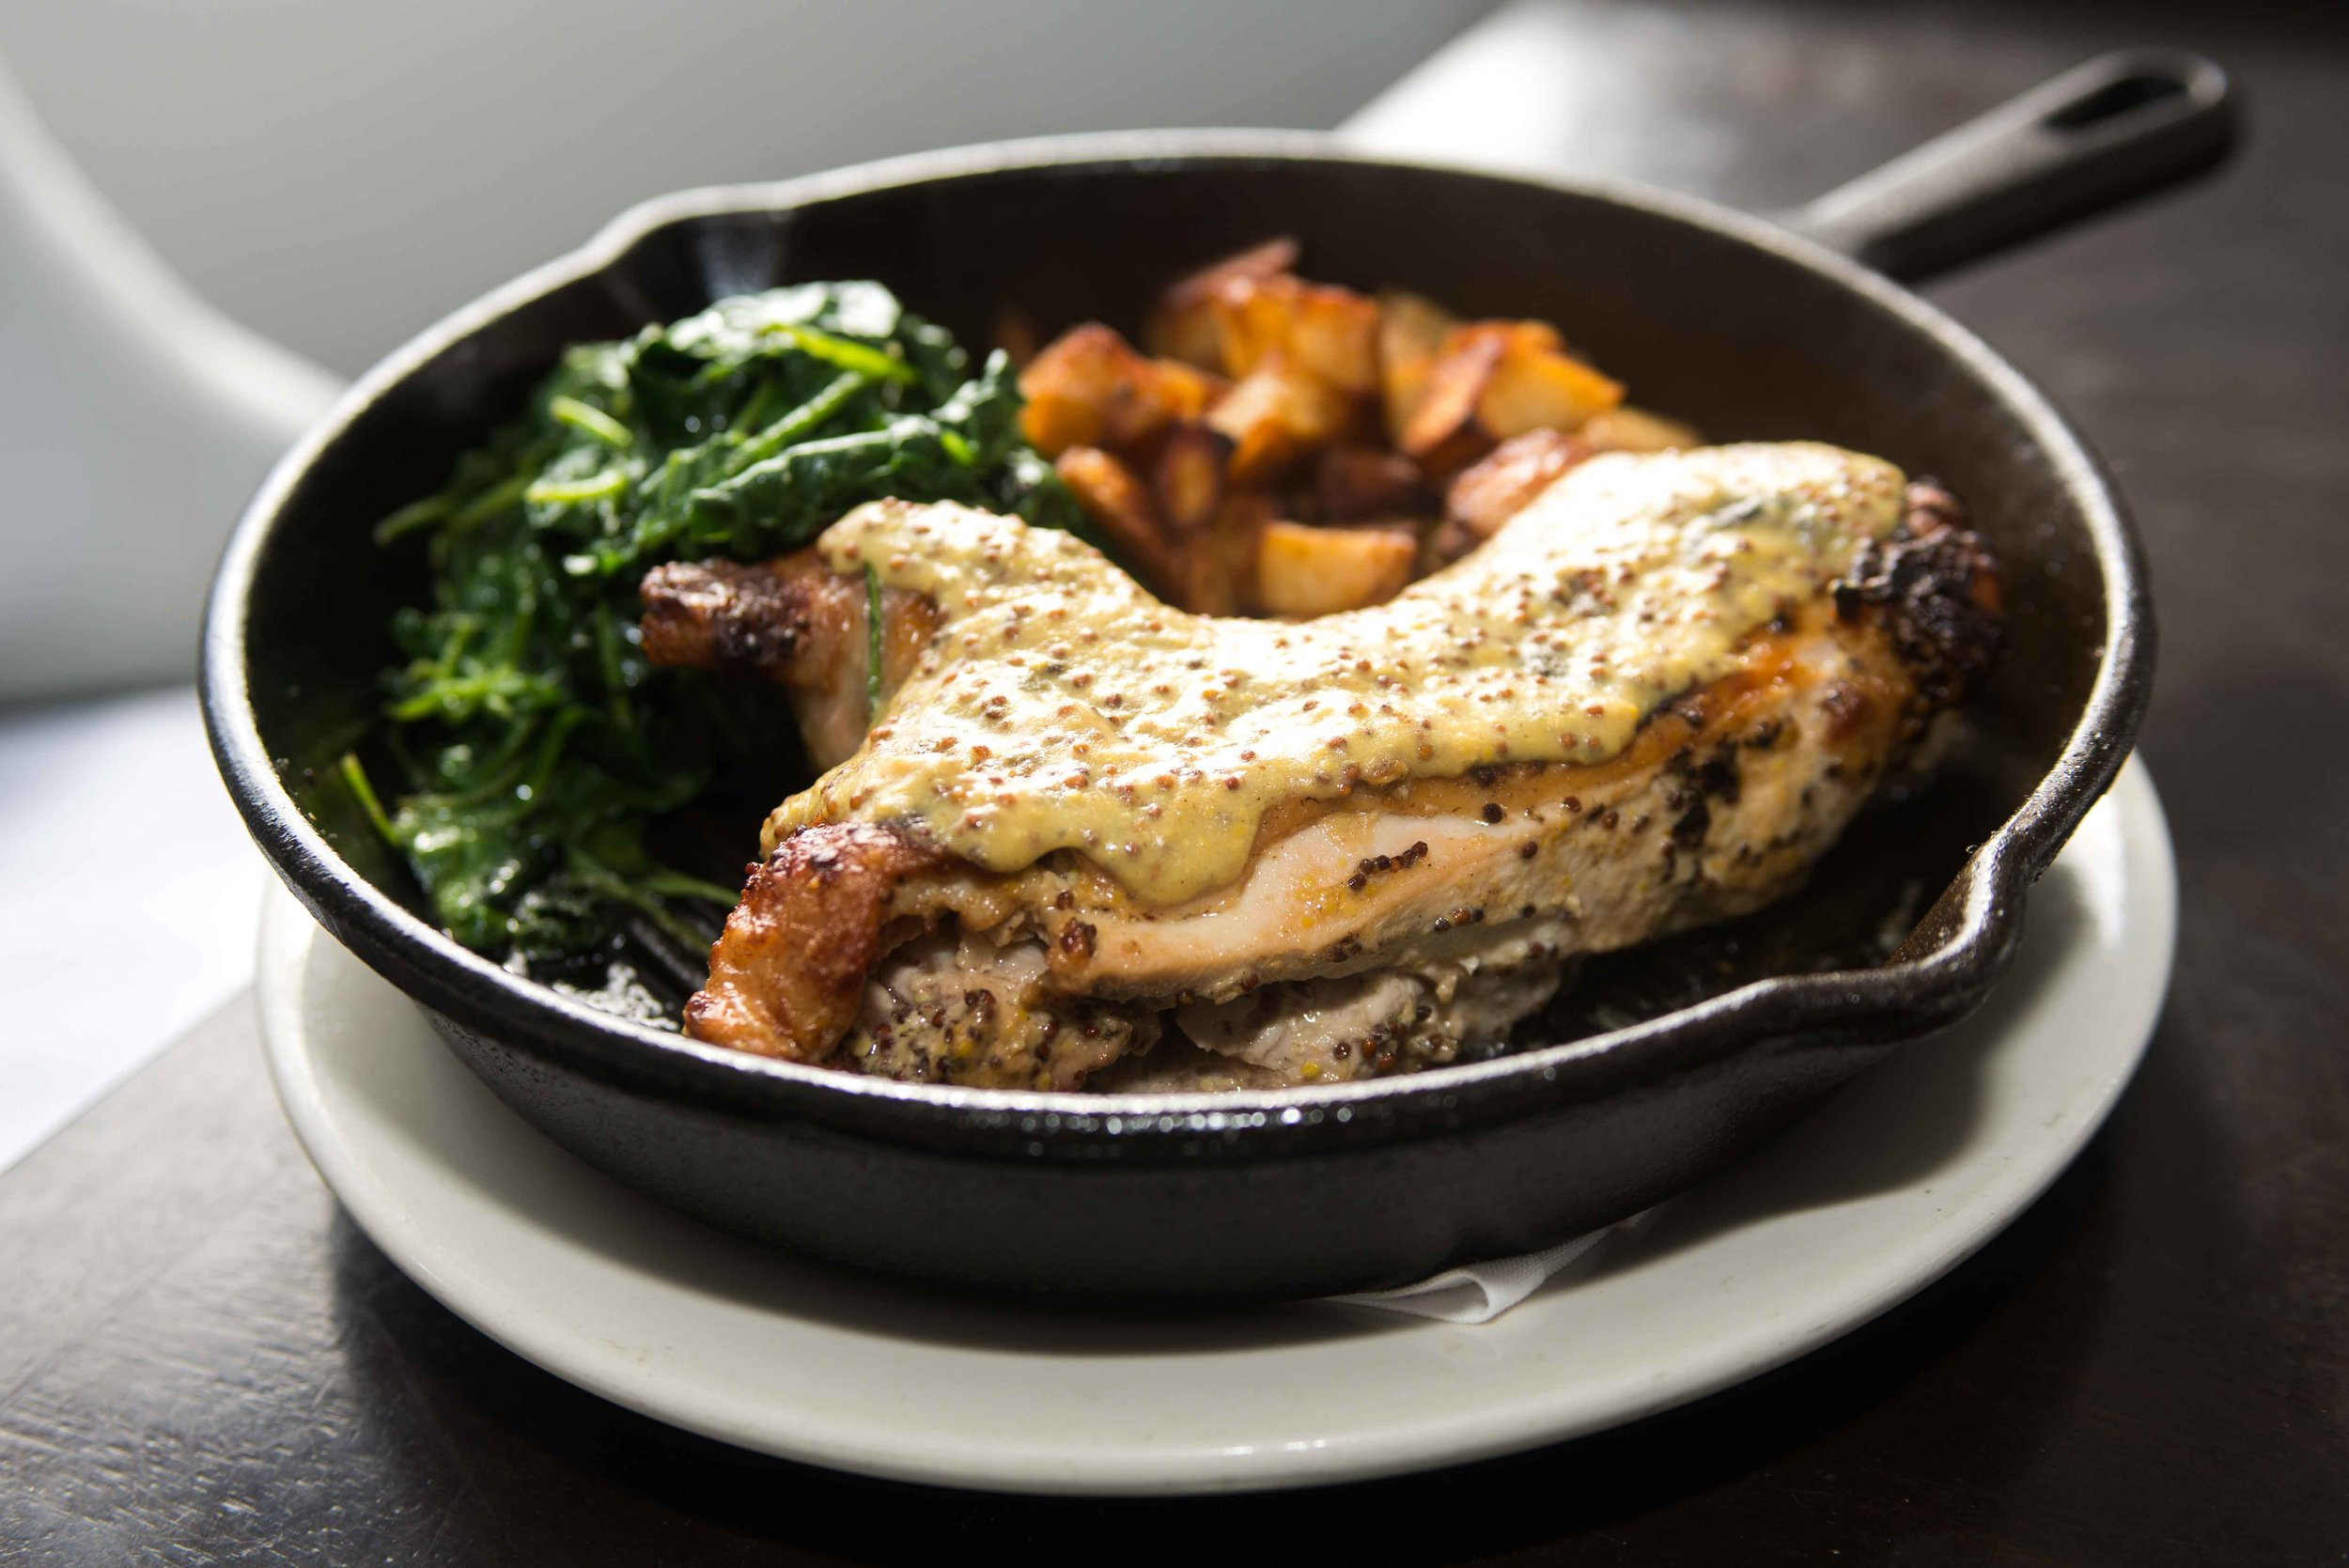 Oven-roasted Mustard Chicken with Sautéed Spinach and Homestyle Potatoes